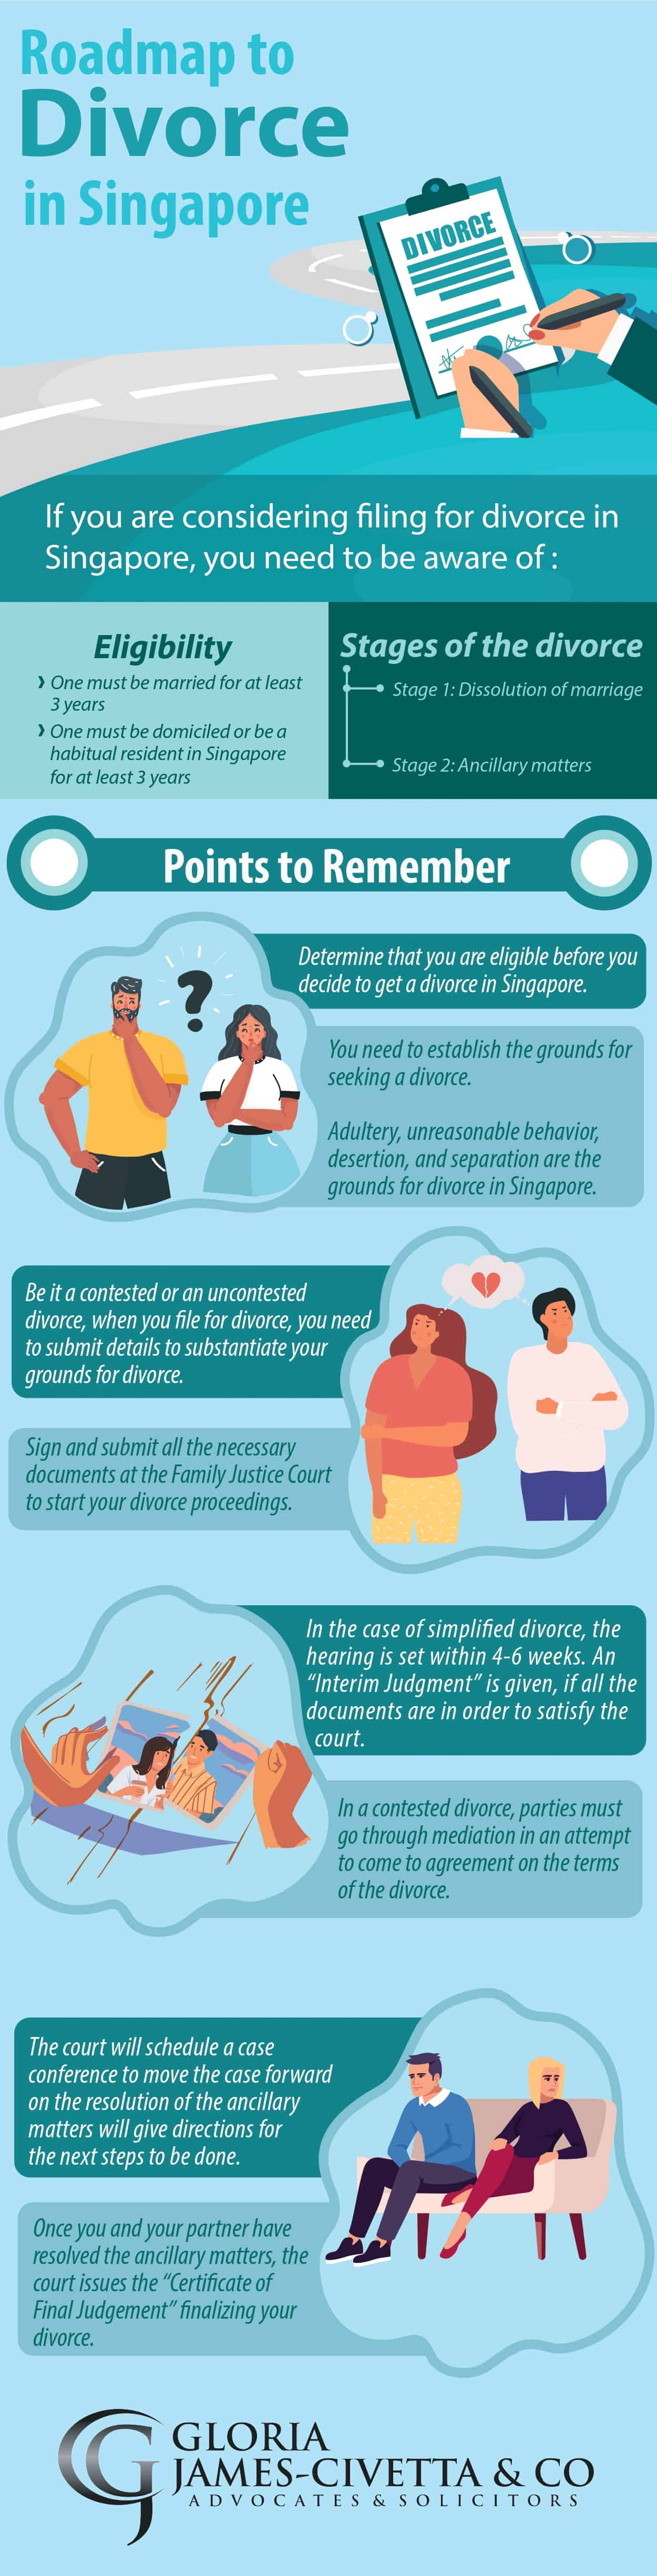 The Route to Divorce in Singapore